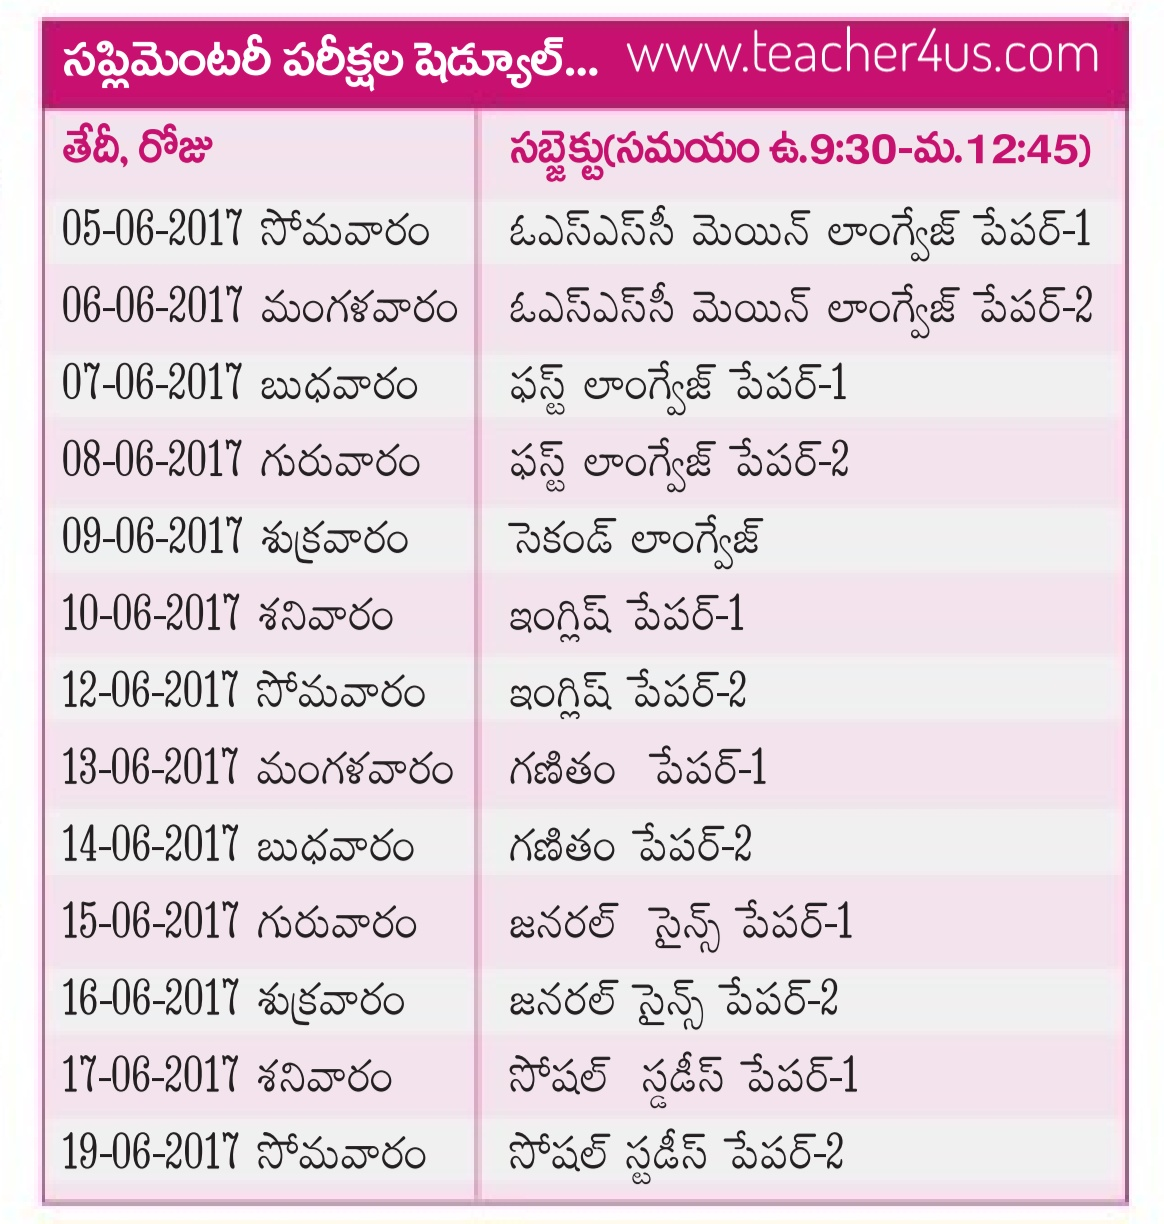 Telangana 10th class supplementary examination due dates Time table 2017